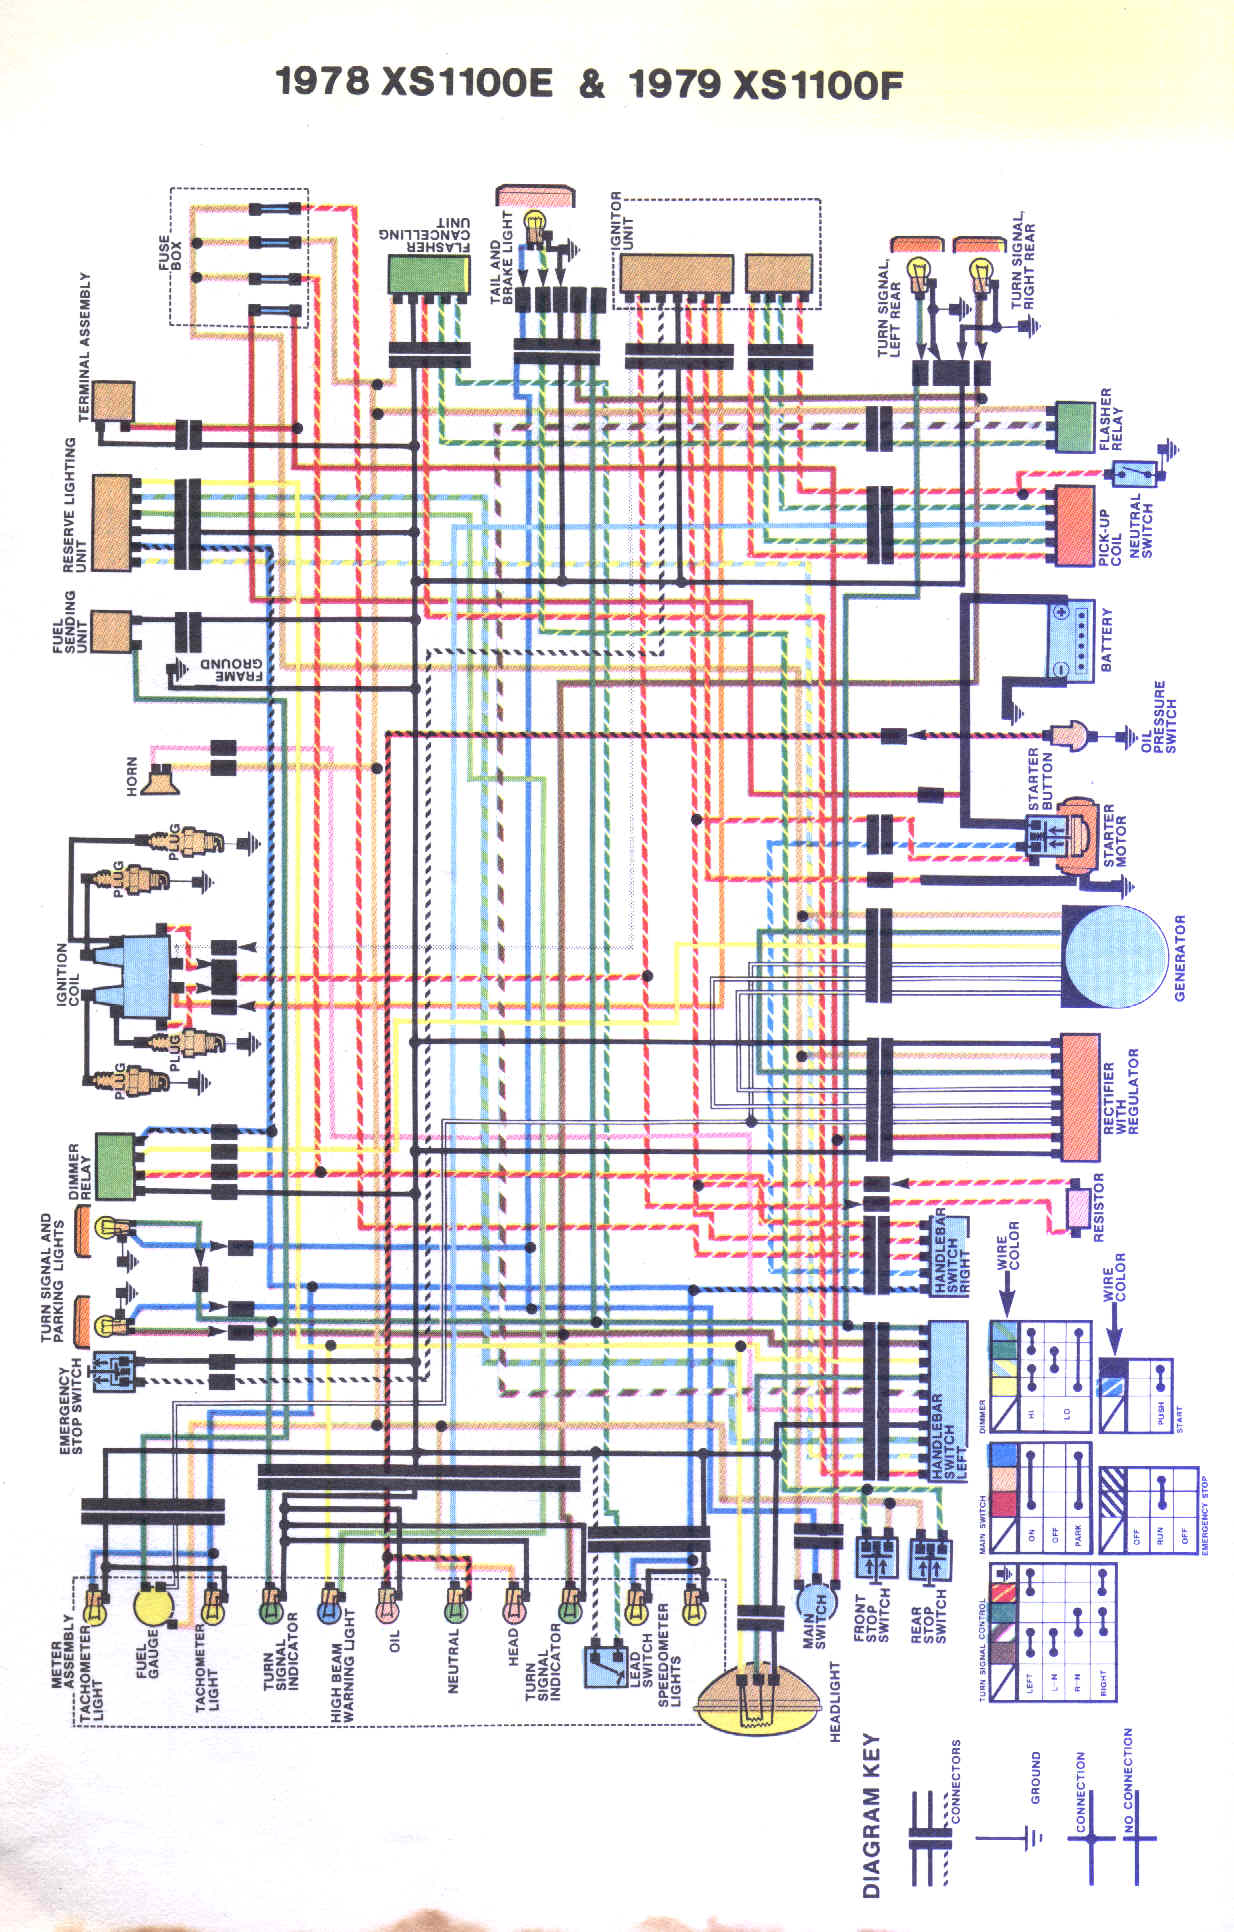 hight resolution of trans am wiring harness technical pdf for 1980 trans am and firebird1980 trans am wiring diagram